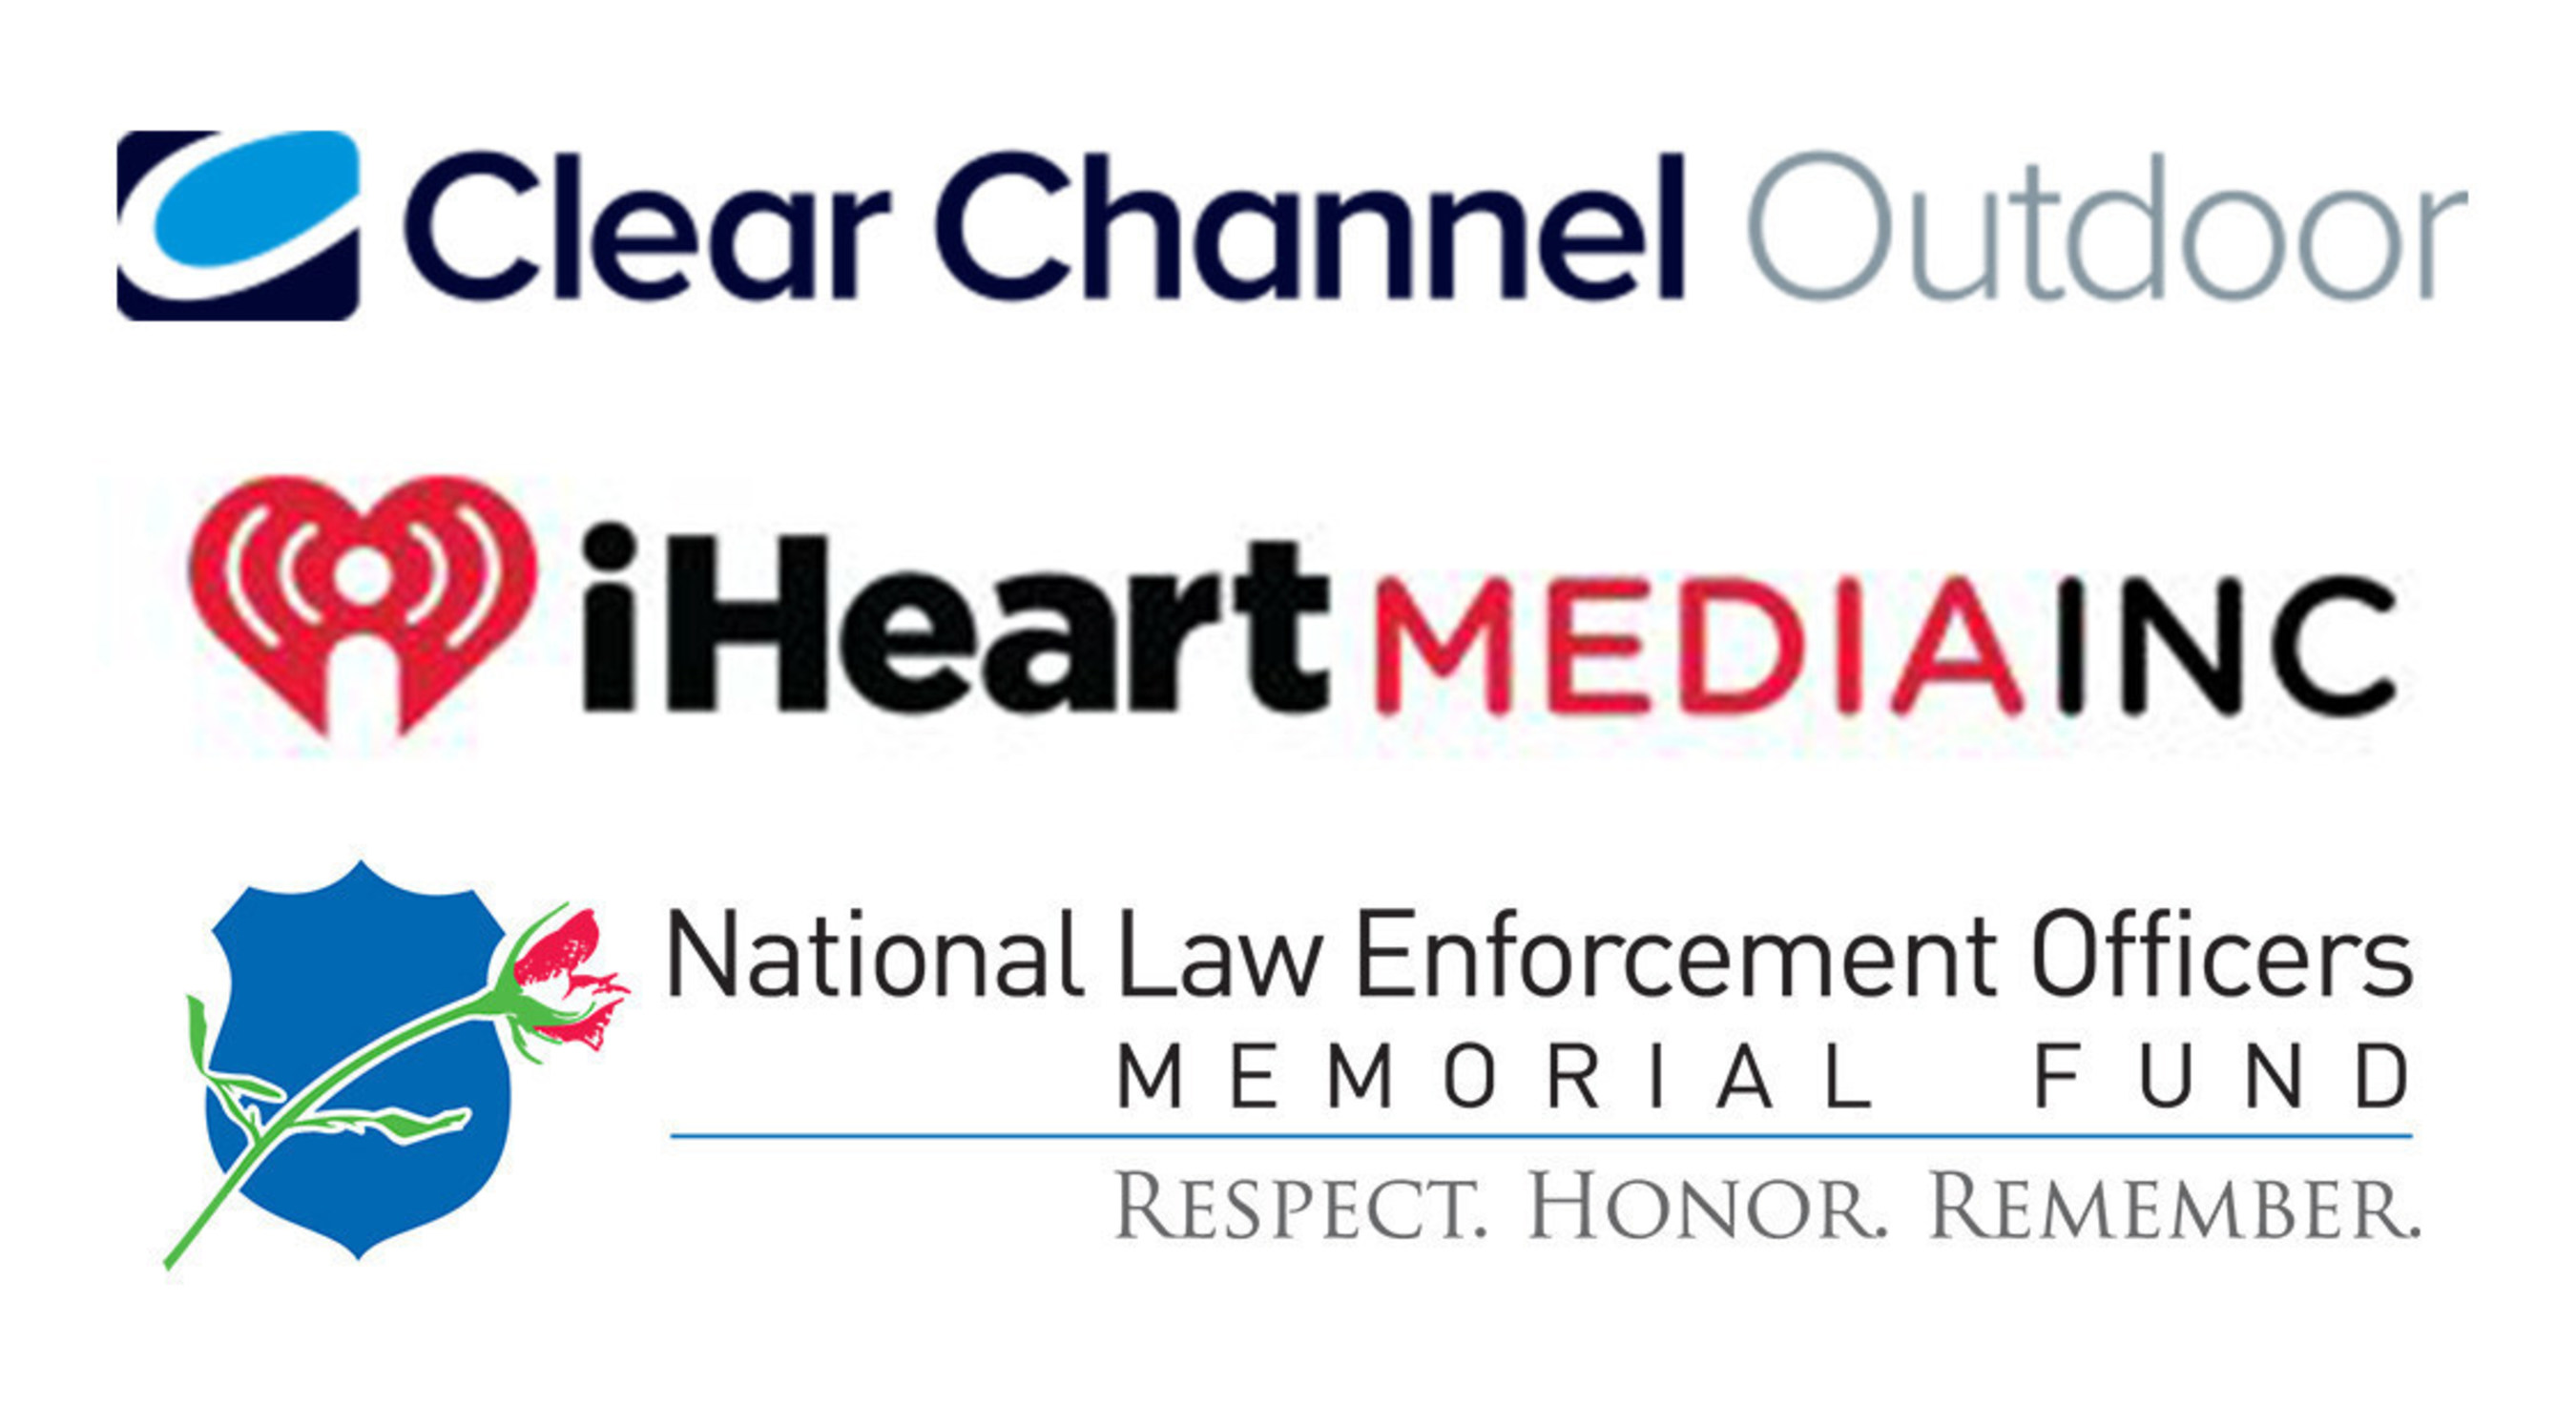 Clear Channel Outdoor Americas & iHeartMedia Join the National Law Enforcement Officers Memorial Fund for Third Annual National Police Week Tribute to Law Enforcement Her